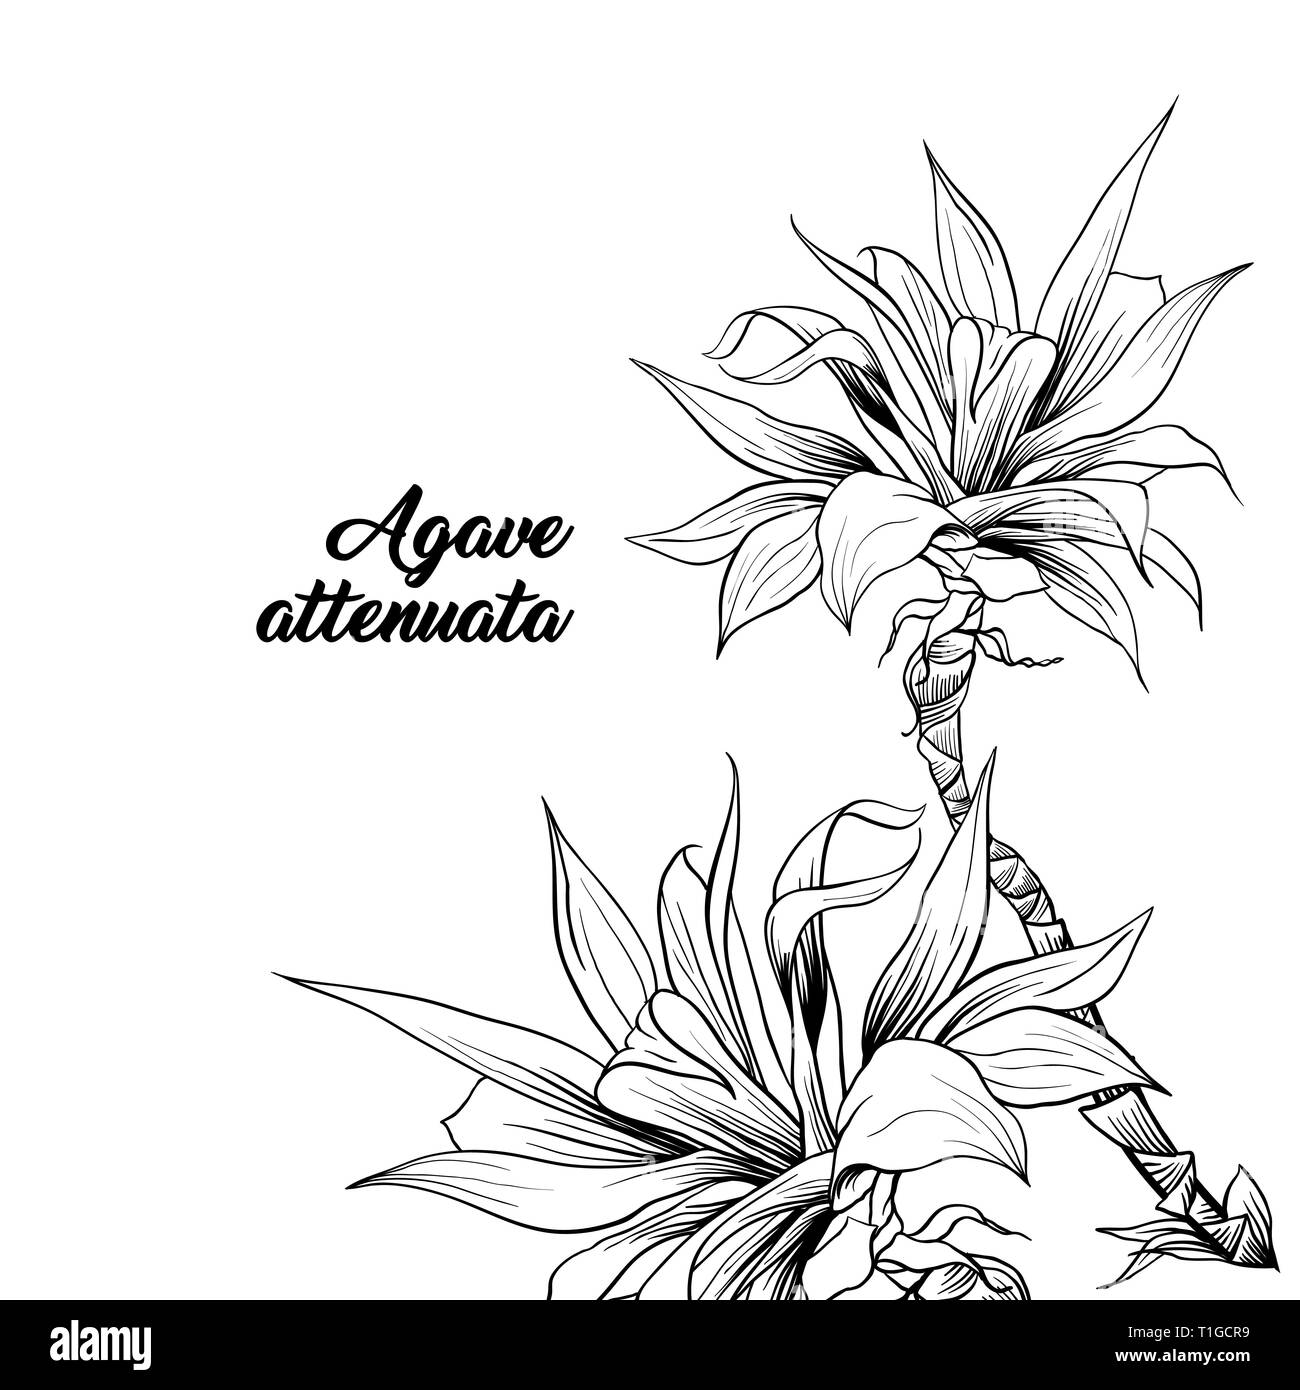 Agave Attenuata with name hand drawn illustration. Palm tree branches ink pen drawing. Botanical clipart with calligraphy. Tropical plant outline sketch. Exotic leaves monochrome design element - Stock Vector